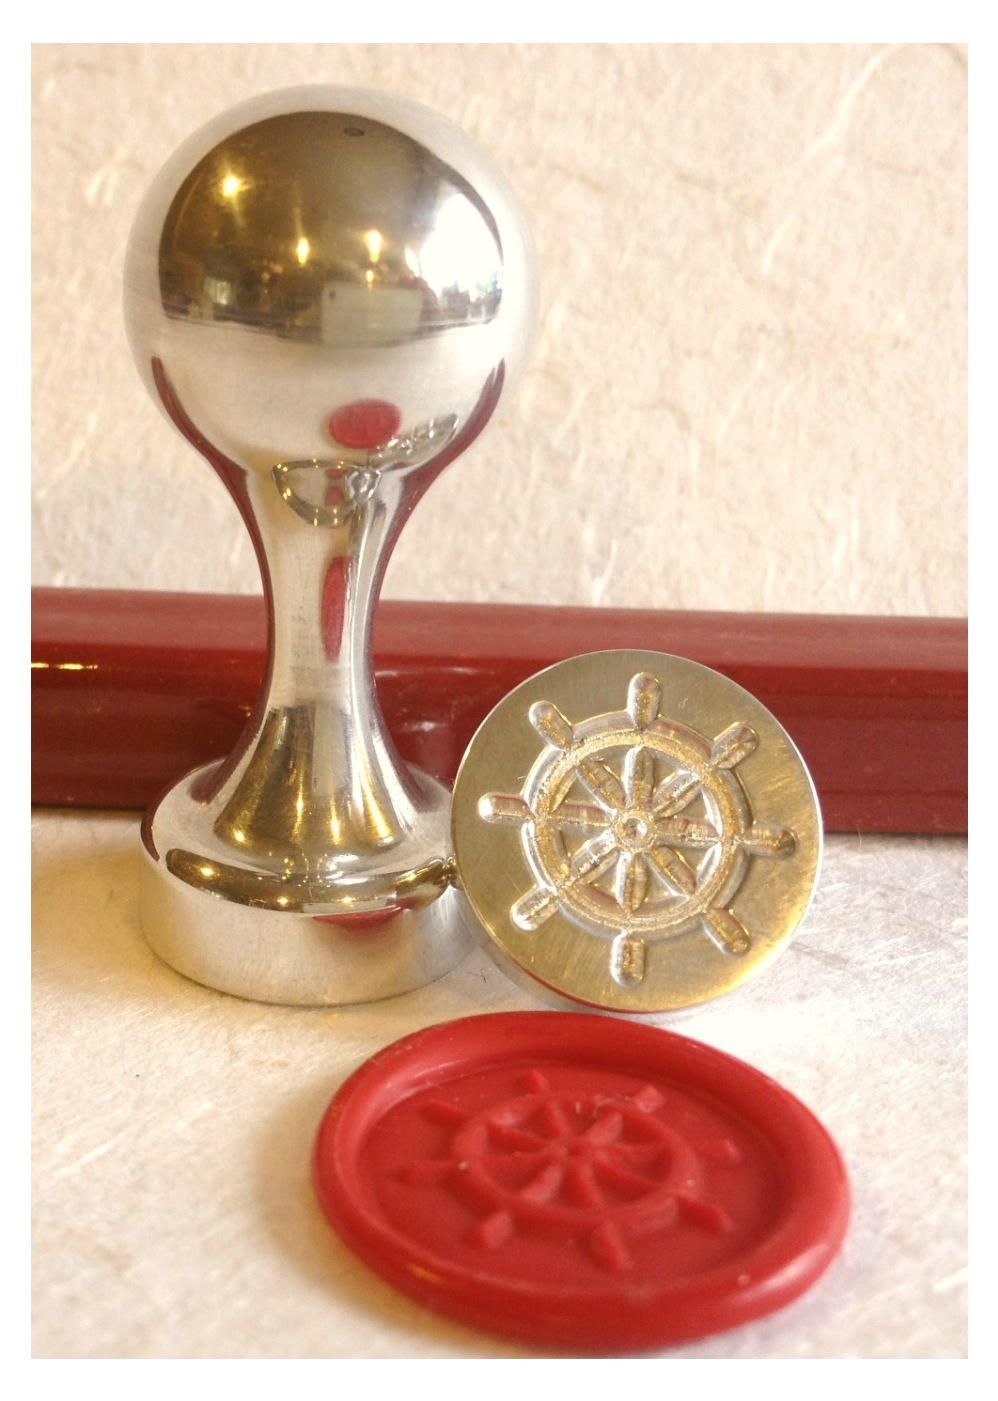 Captain Wheel wax seal